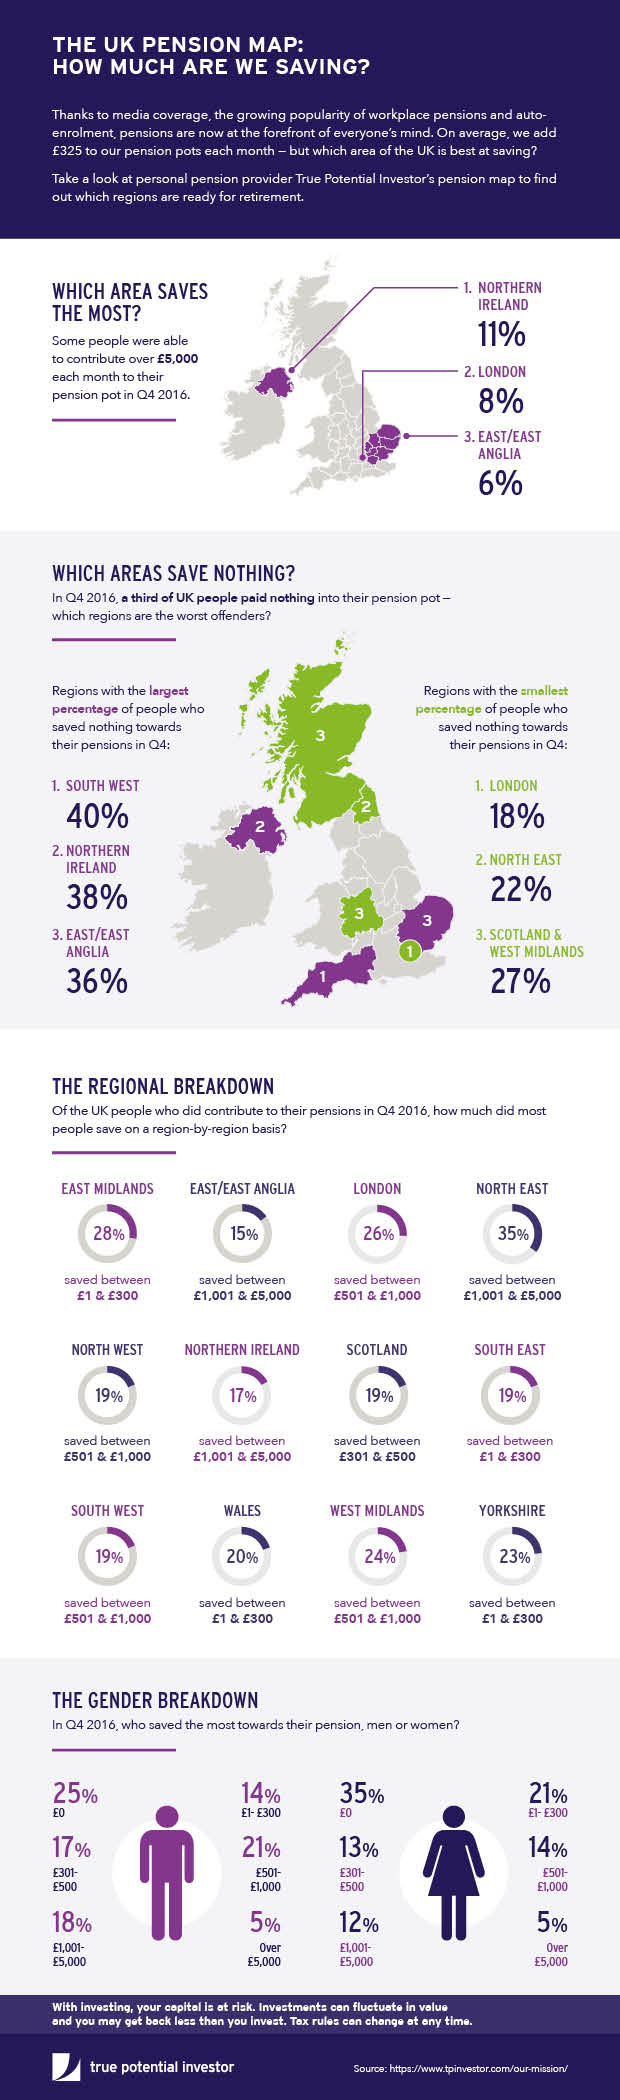 True Potential - UK Pension map - based on Q4